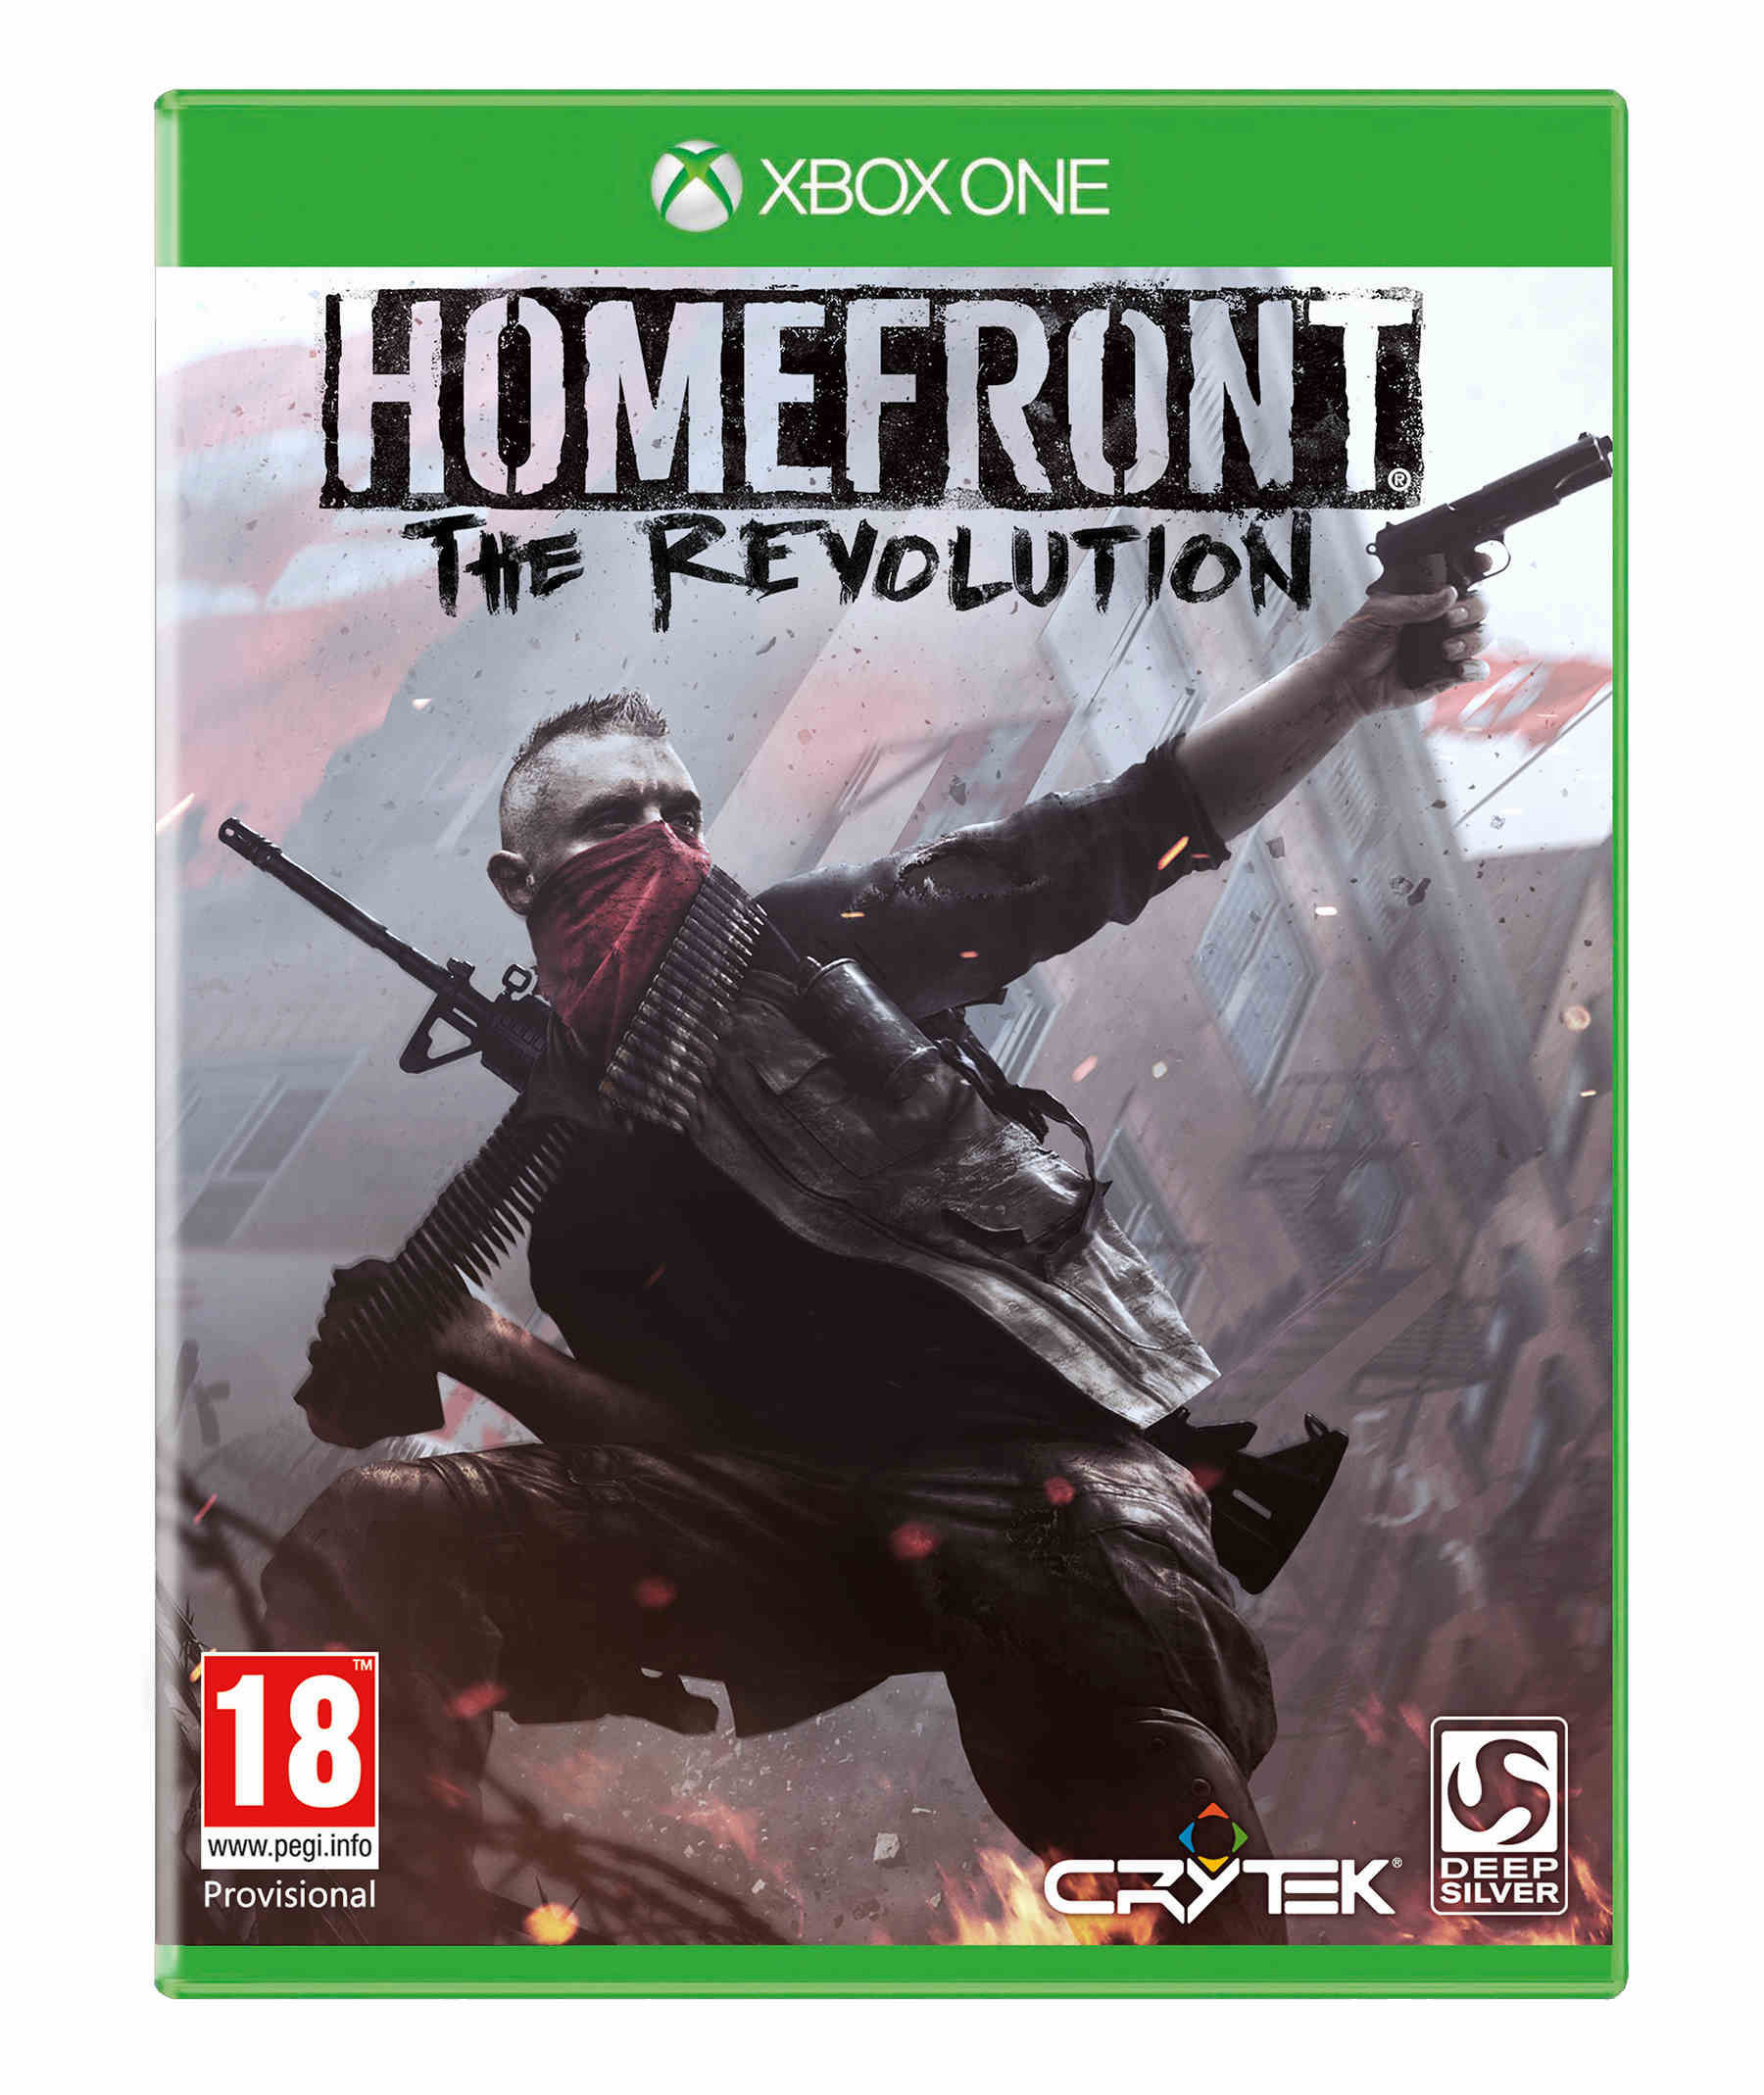 E3 2014 LE CHOC DES JEUX NEW GEN Homefront-the-revolution-xbox-one